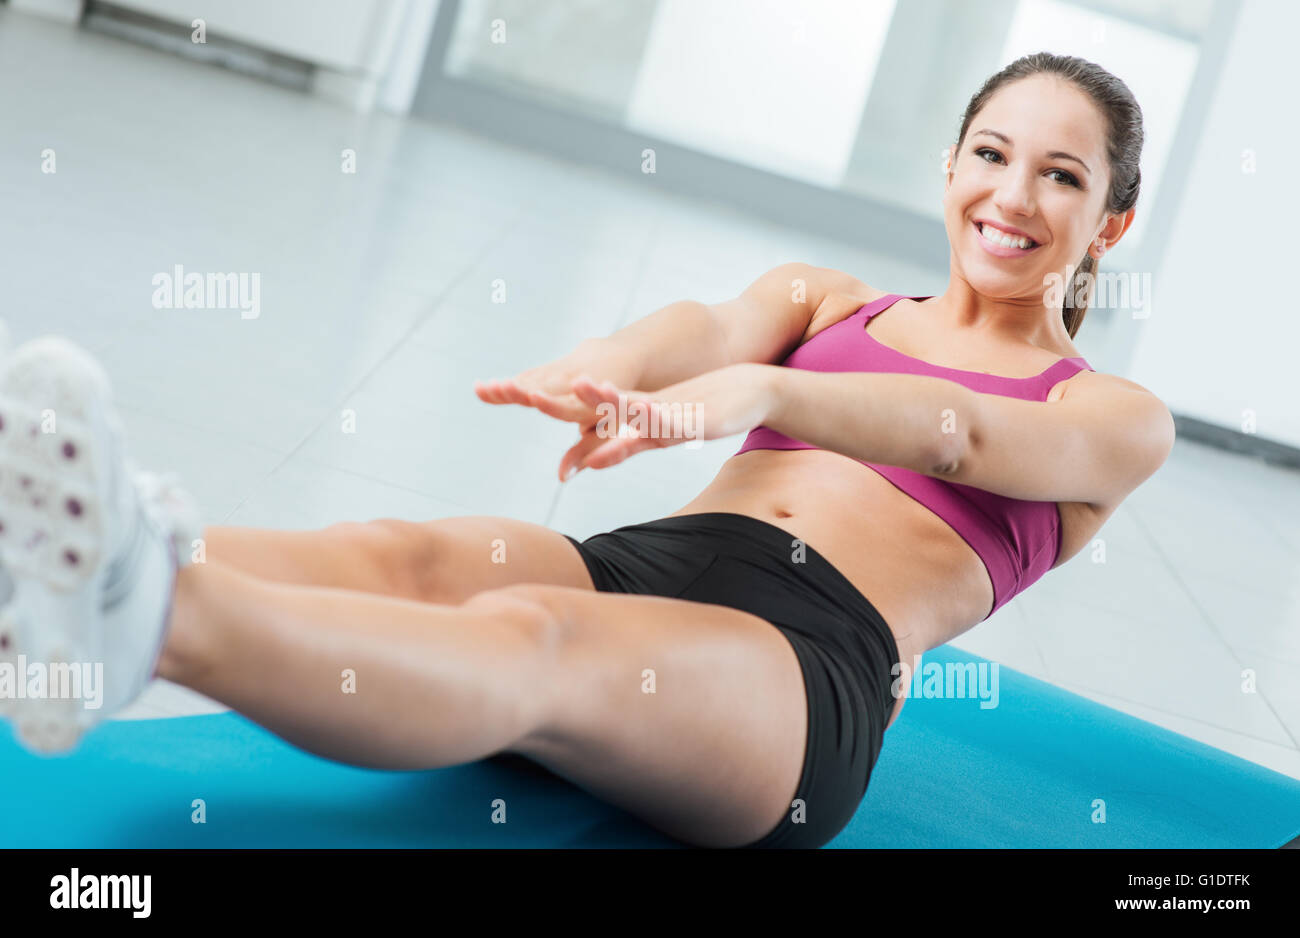 Smiling young woman doing adbominal exercises at the gym on a mat, fitness and workout concept - Stock Image